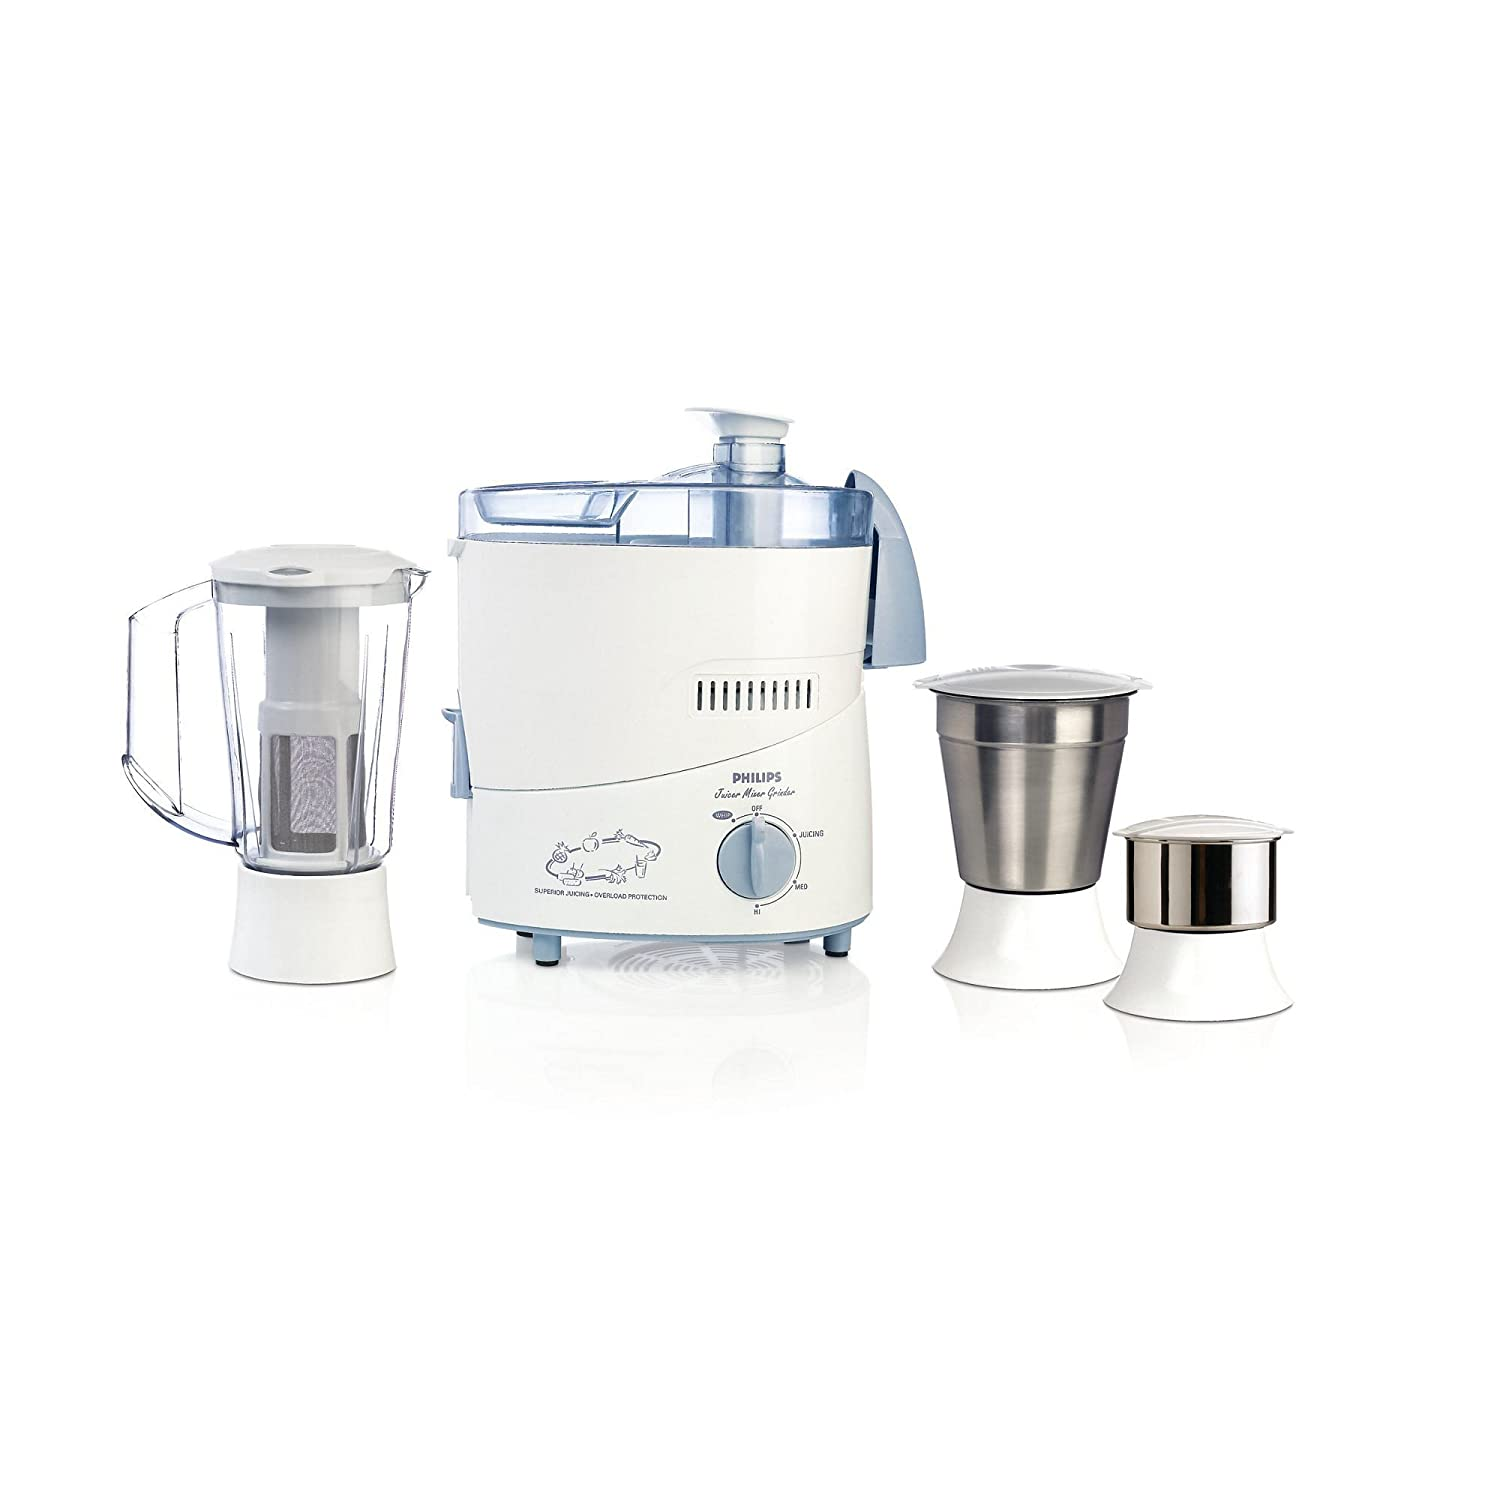 33% discount on Philips HL1632 500-Watt 3 Jar Juicer Mixer Grinder with Fruit Filter (Blue) @2658 at Amazon. in